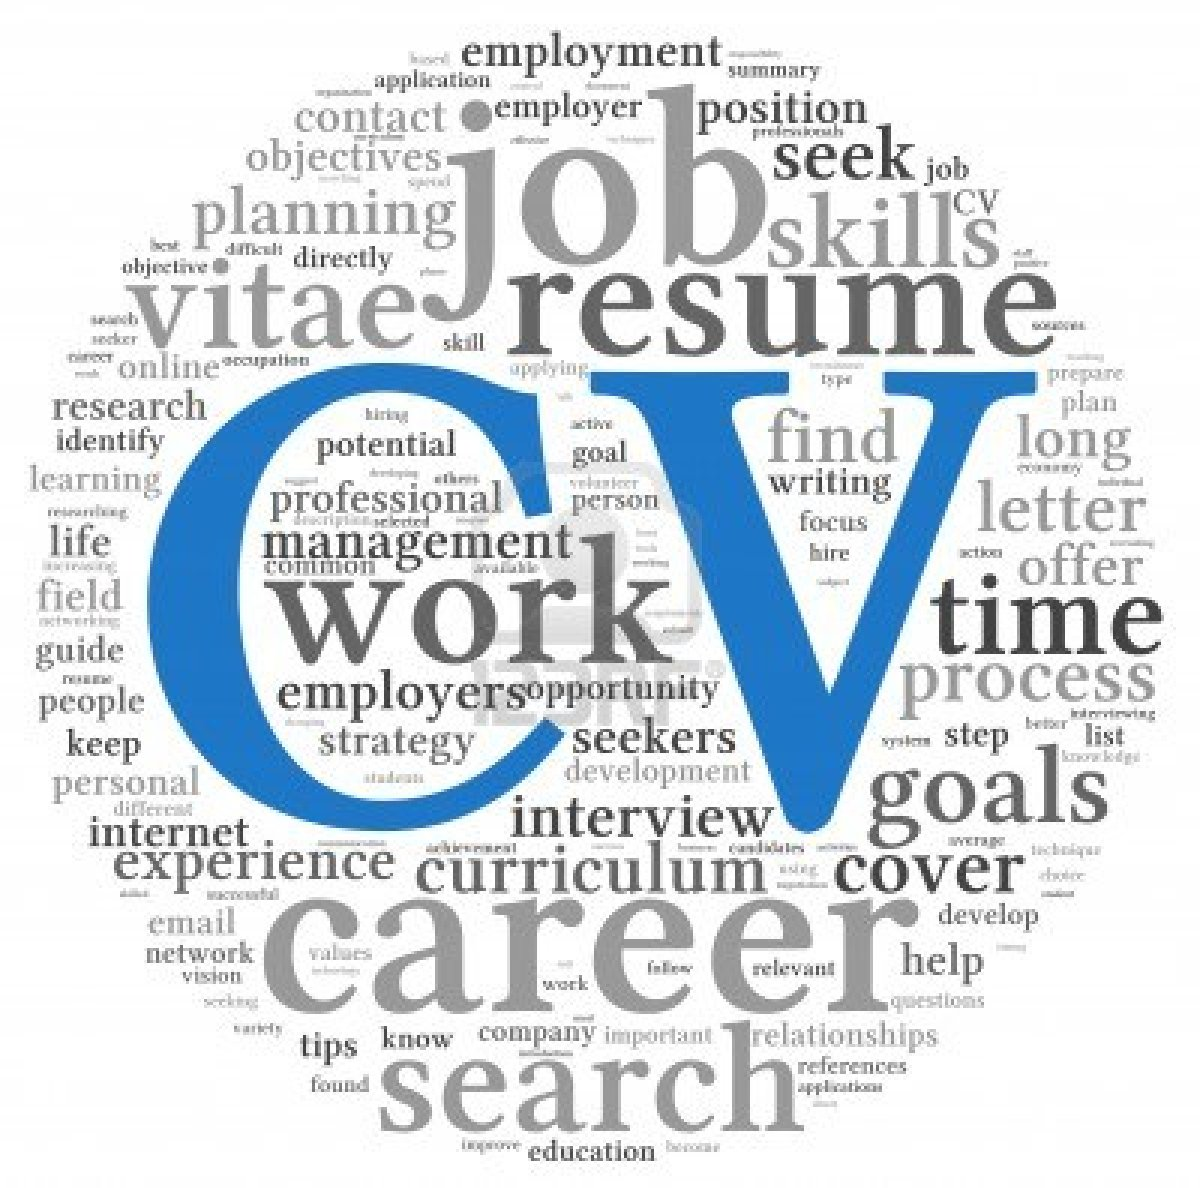 how to write a good resume cv - Tips To Write A Good Resume